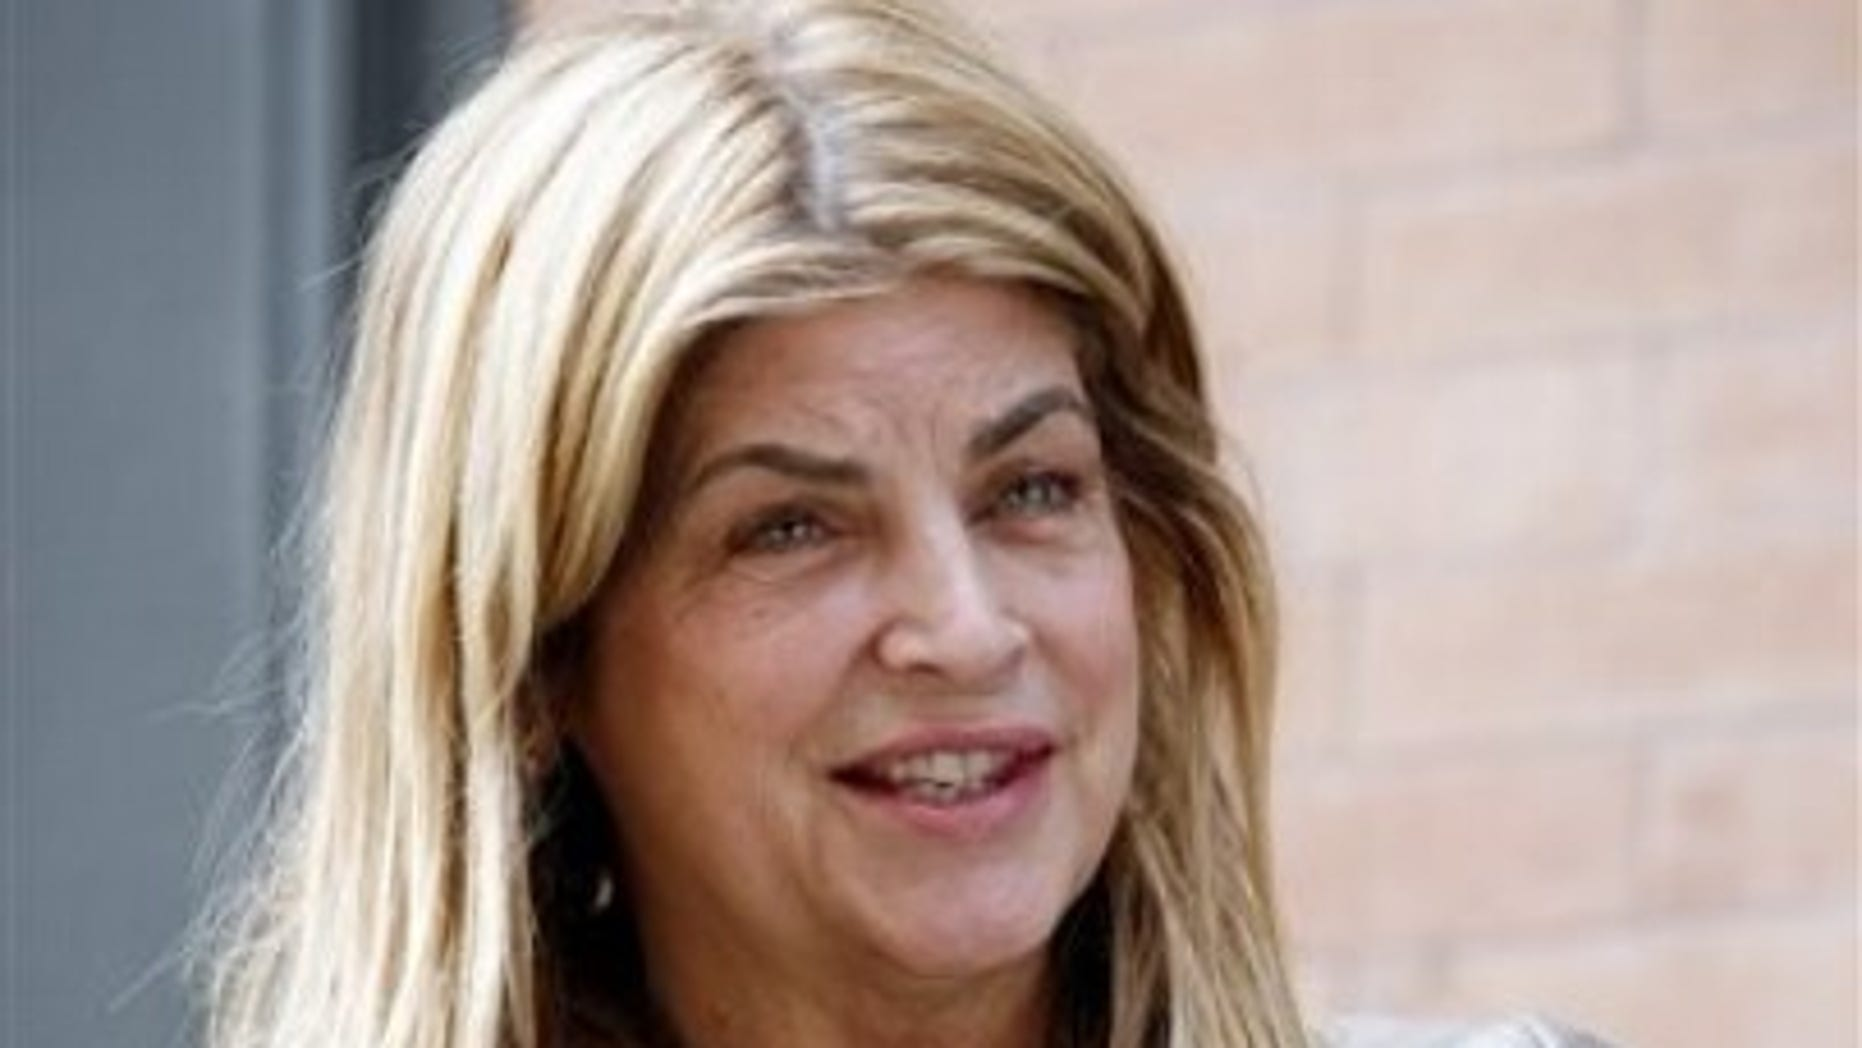 Actress Kirstie Alley talks to the media as she arrives at a building next to the house on Franklin St. in the Tribeca neighborhood of Manhattan where International Monetary Fund leader Dominique Strauss-Kahn is staying under house arrest Saturday, May 28,  2011.  (AP Photo/David Karp)